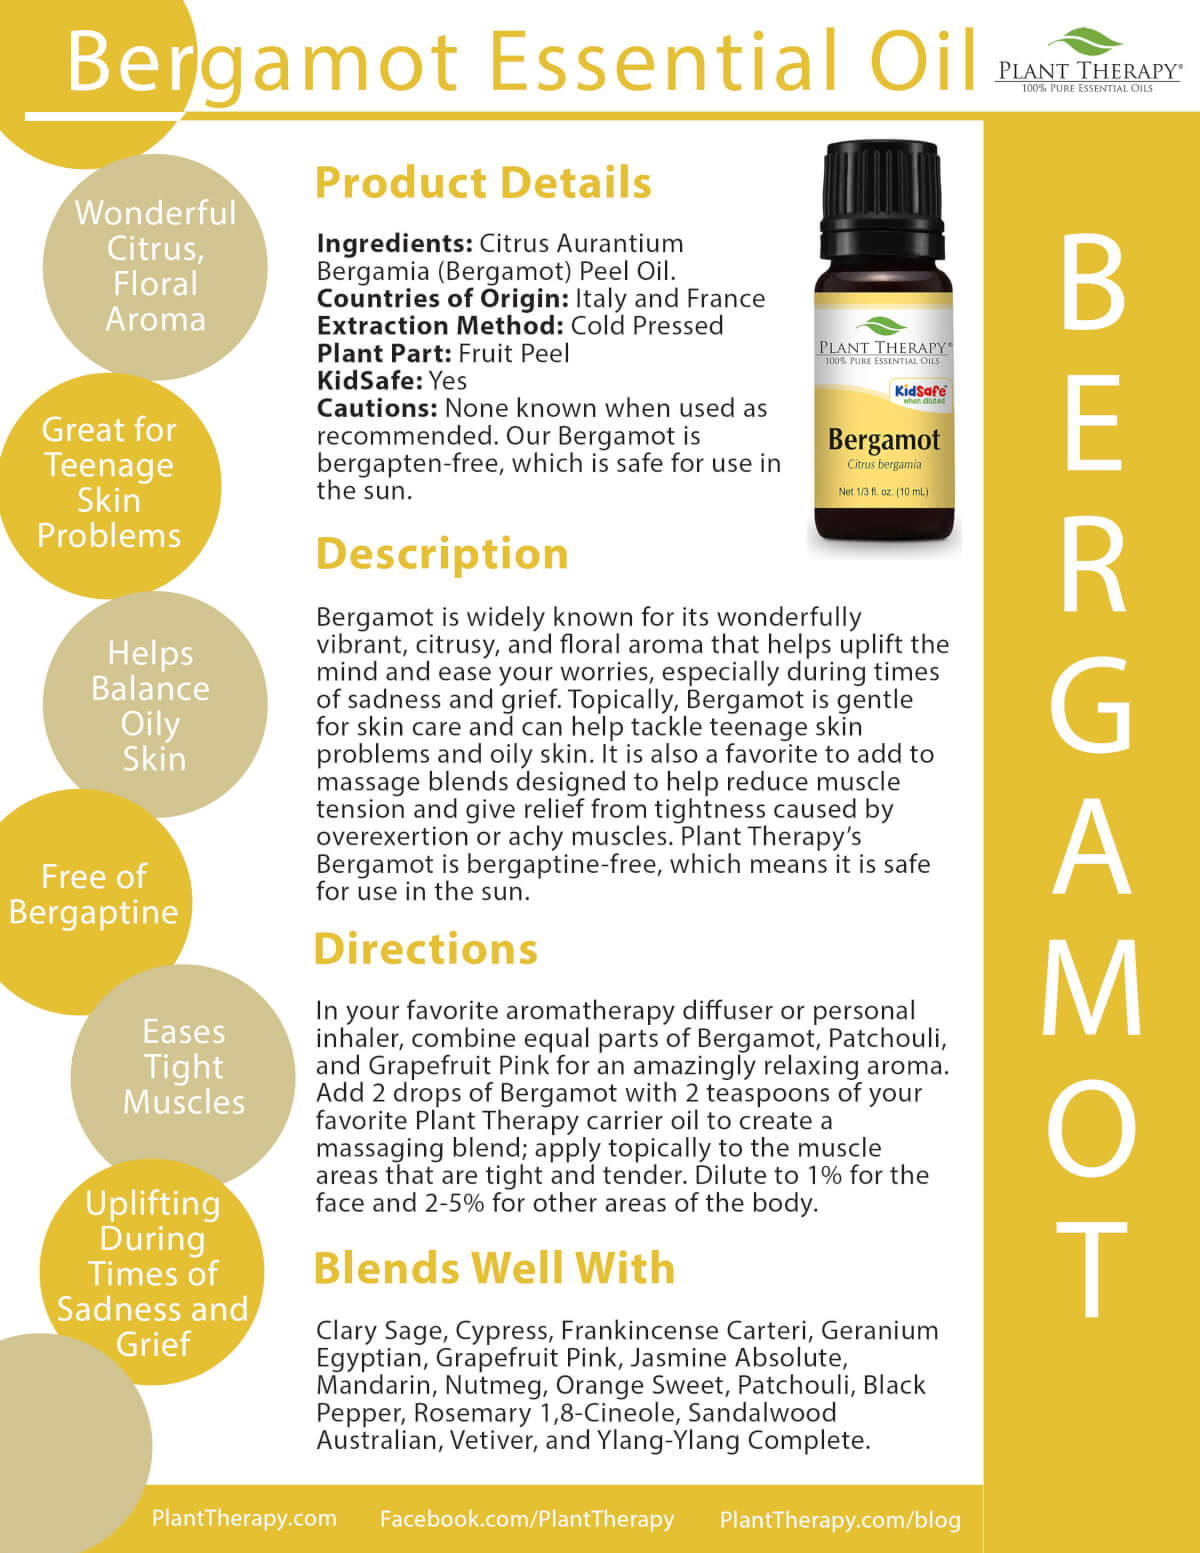 Bergamot Essential Oil from Plant Therapy Product Sheet